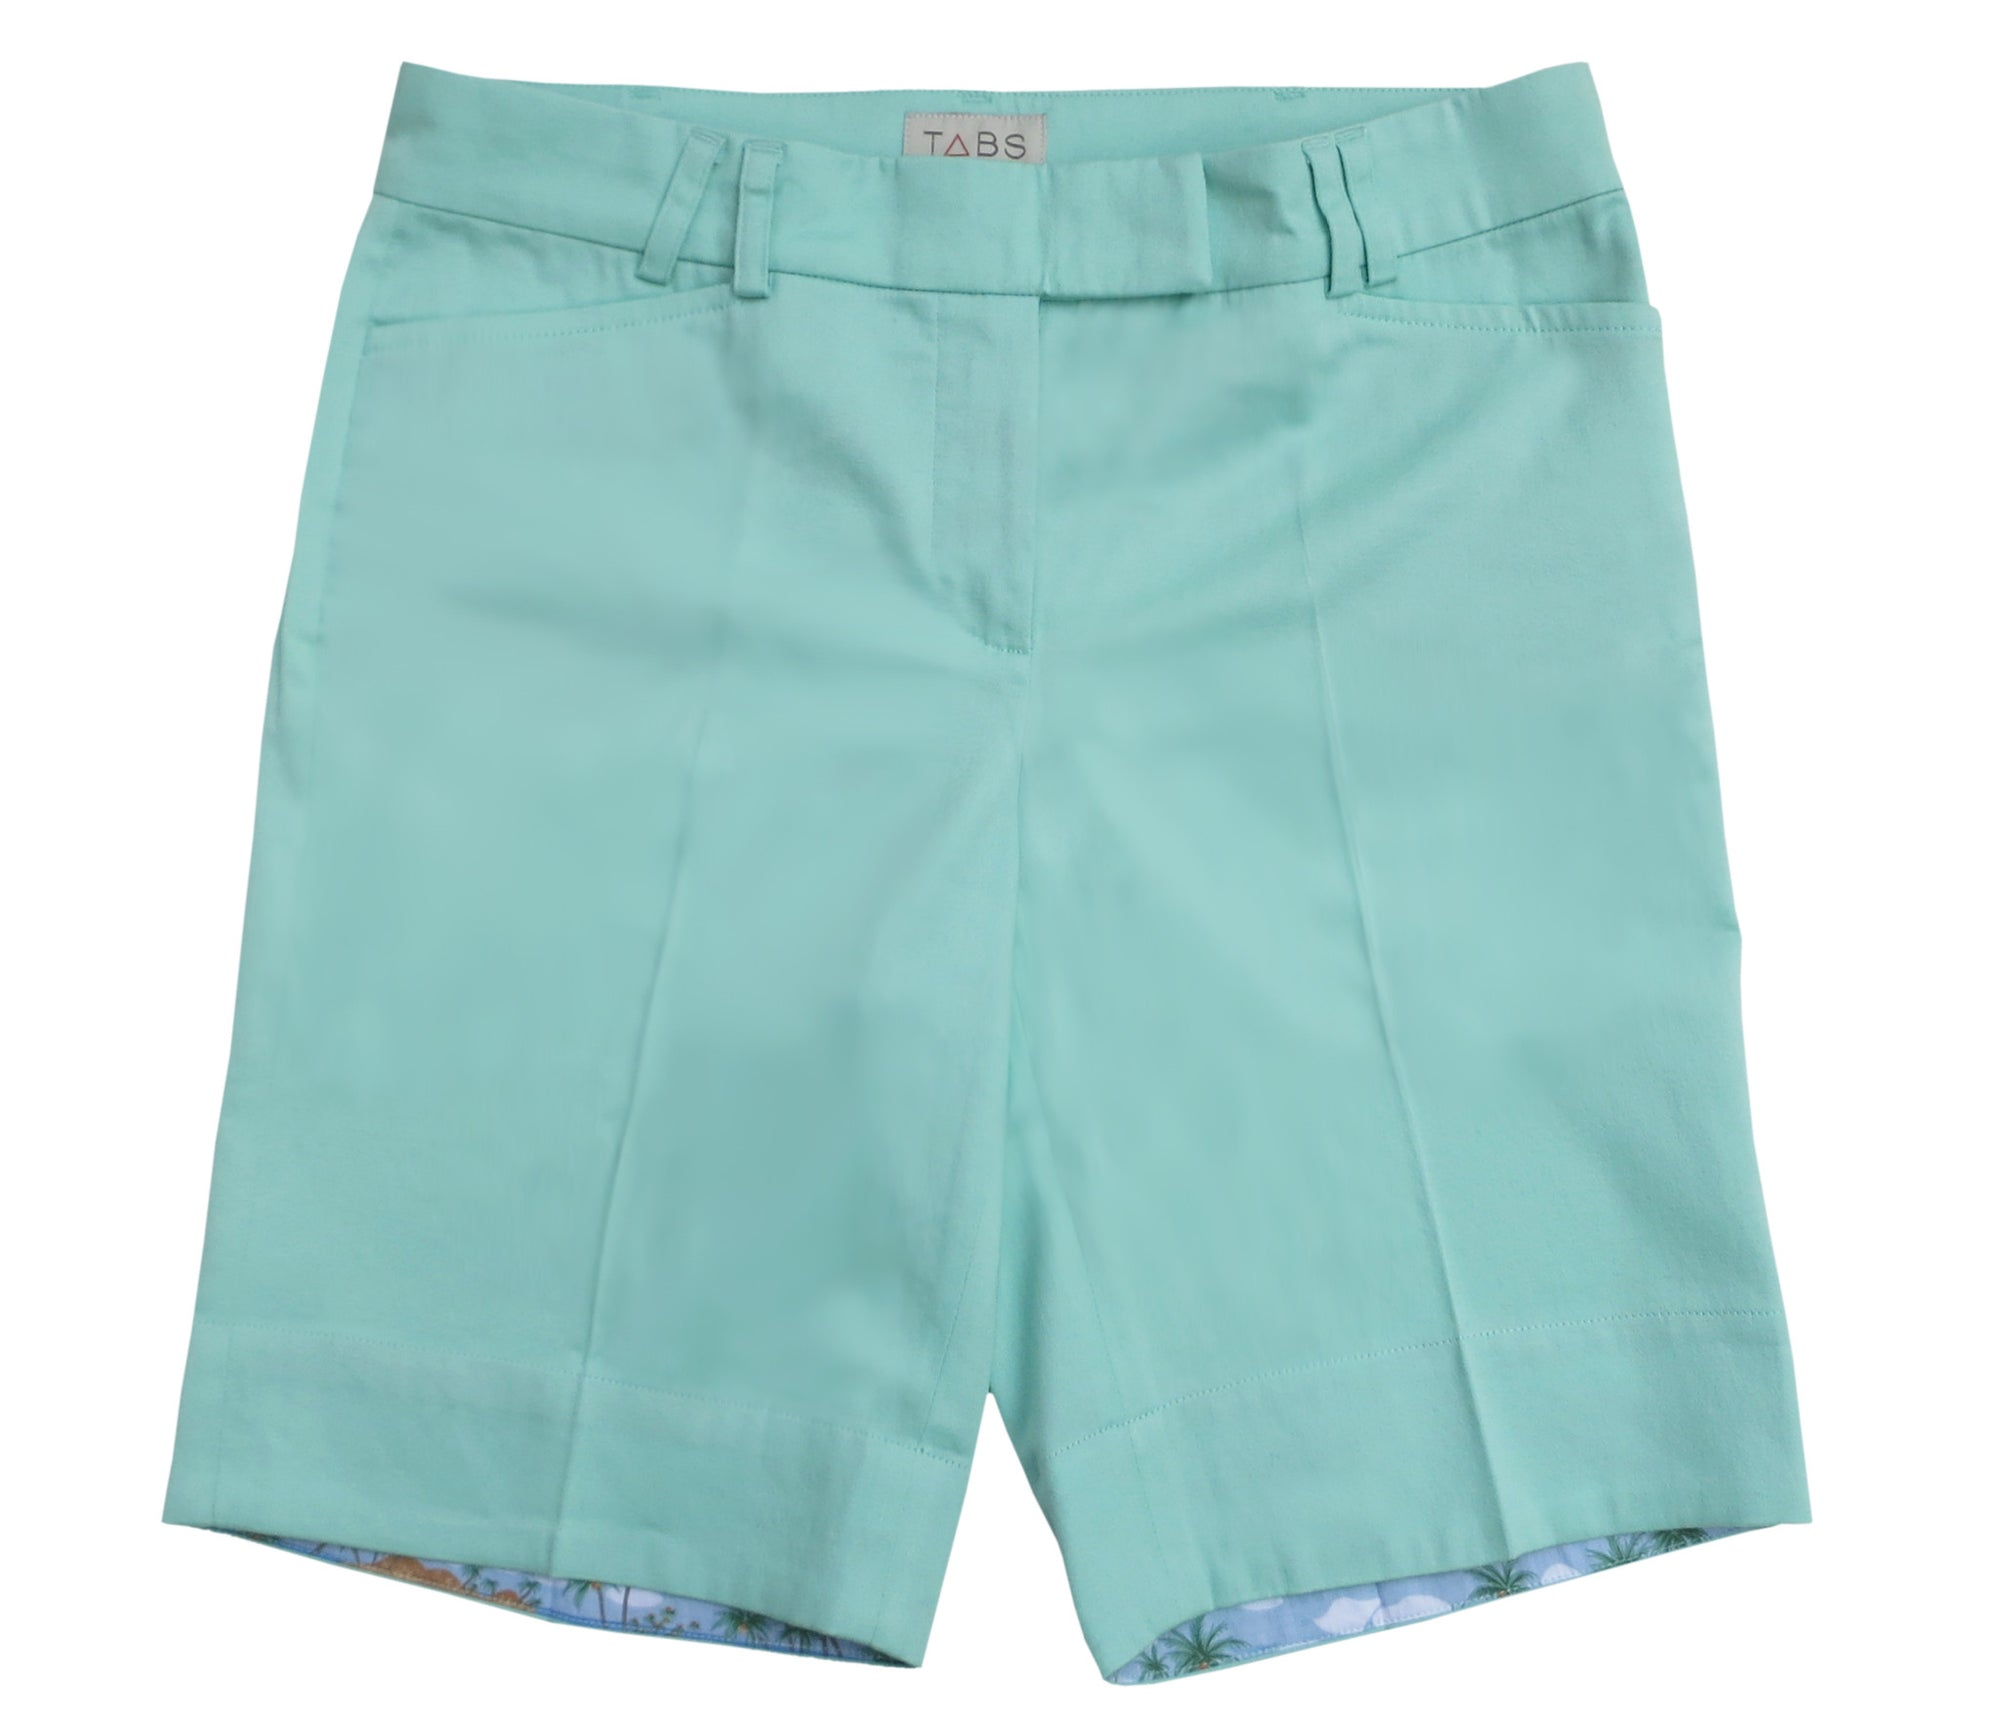 TABS Women Bermuda Shorts, mint, front long